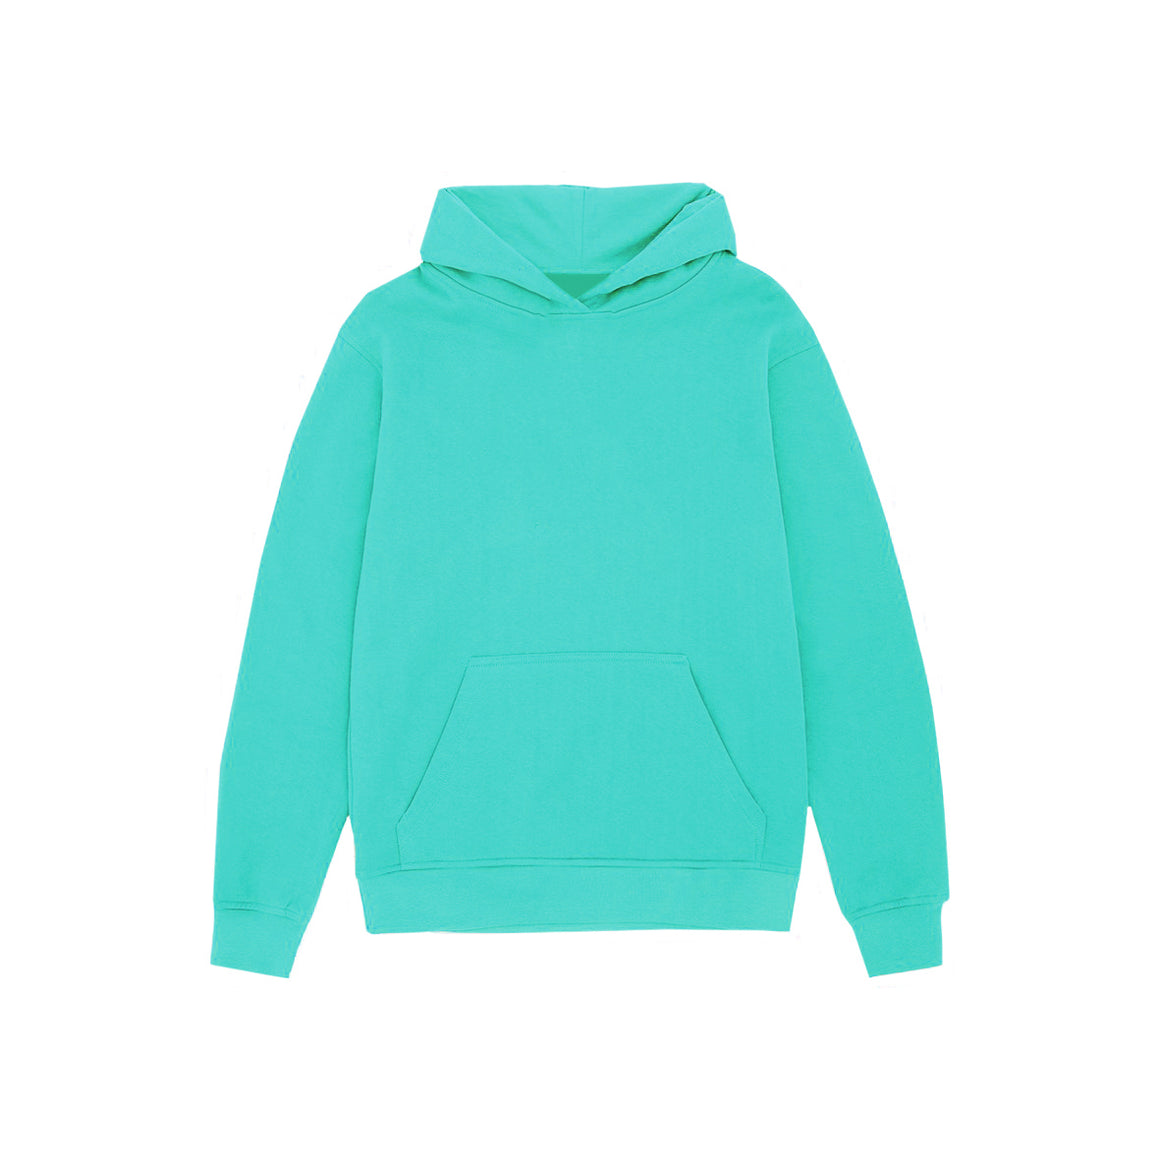 UNBRANDED ESSENTIAL PULLOVER HOODY | TURQUOISE BLUE